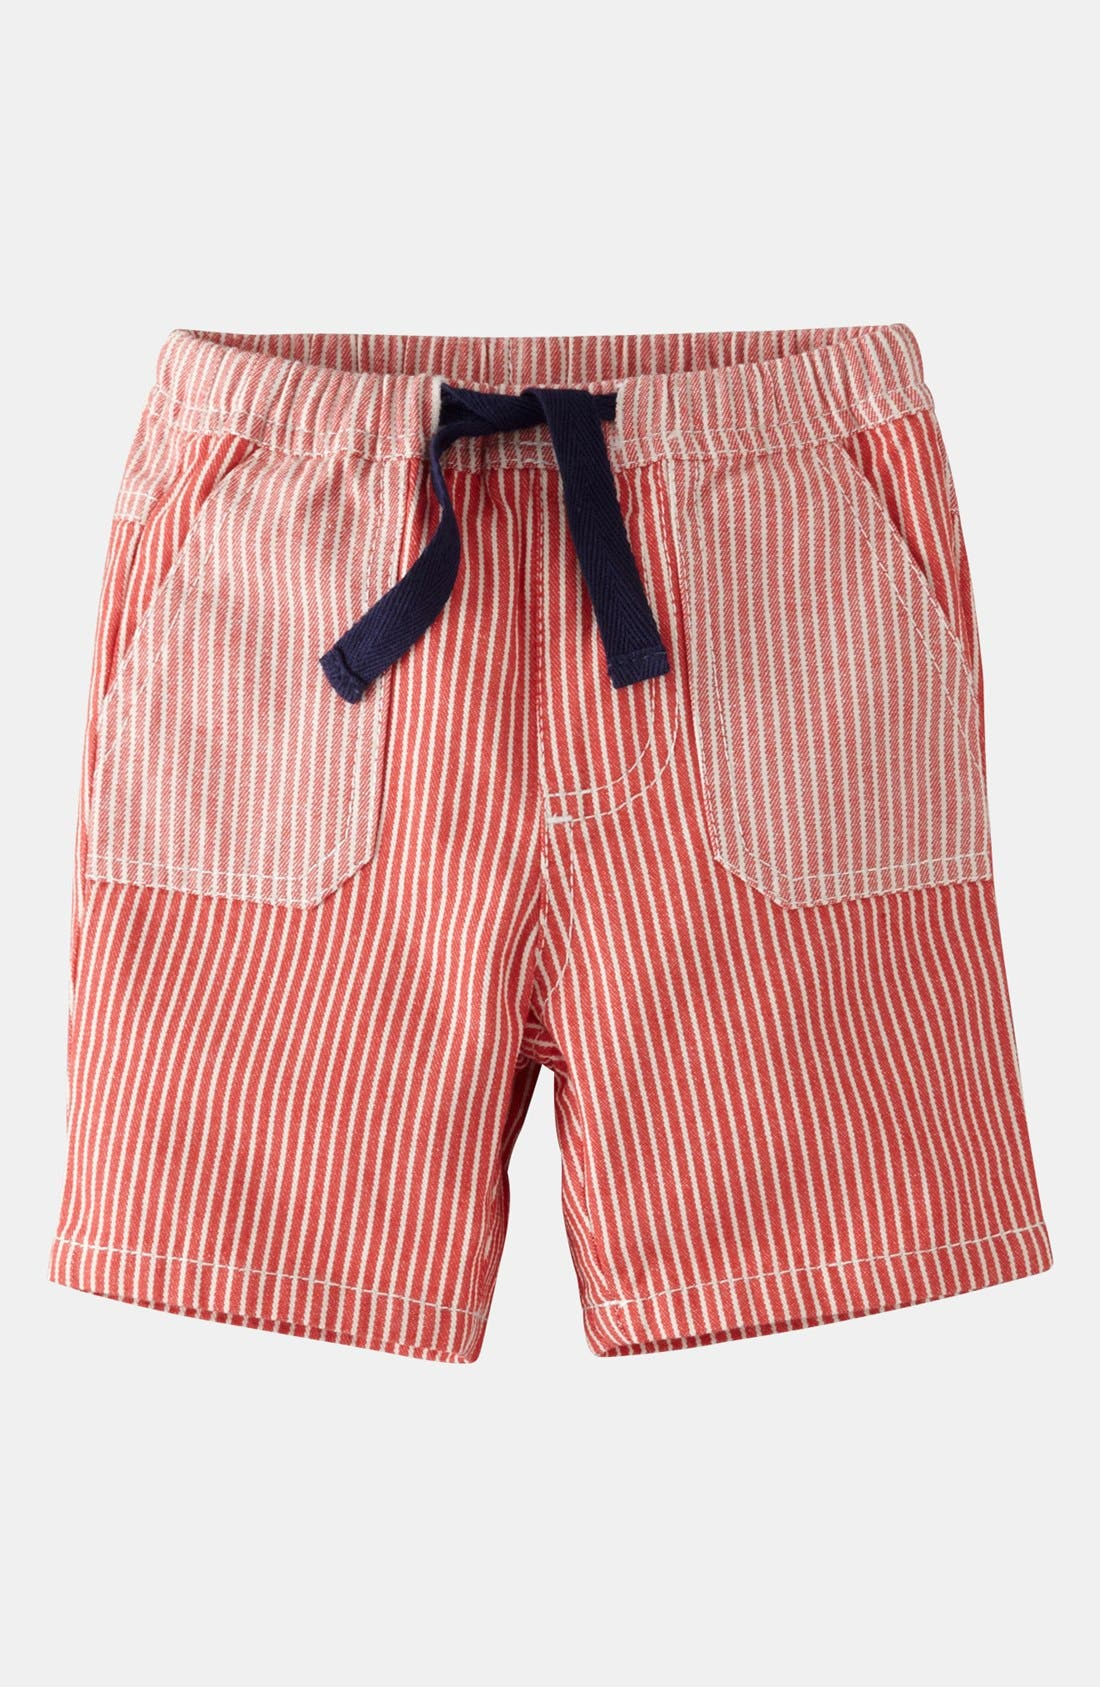 Main Image - Mini Boden 'Ticking' Shorts (Baby)